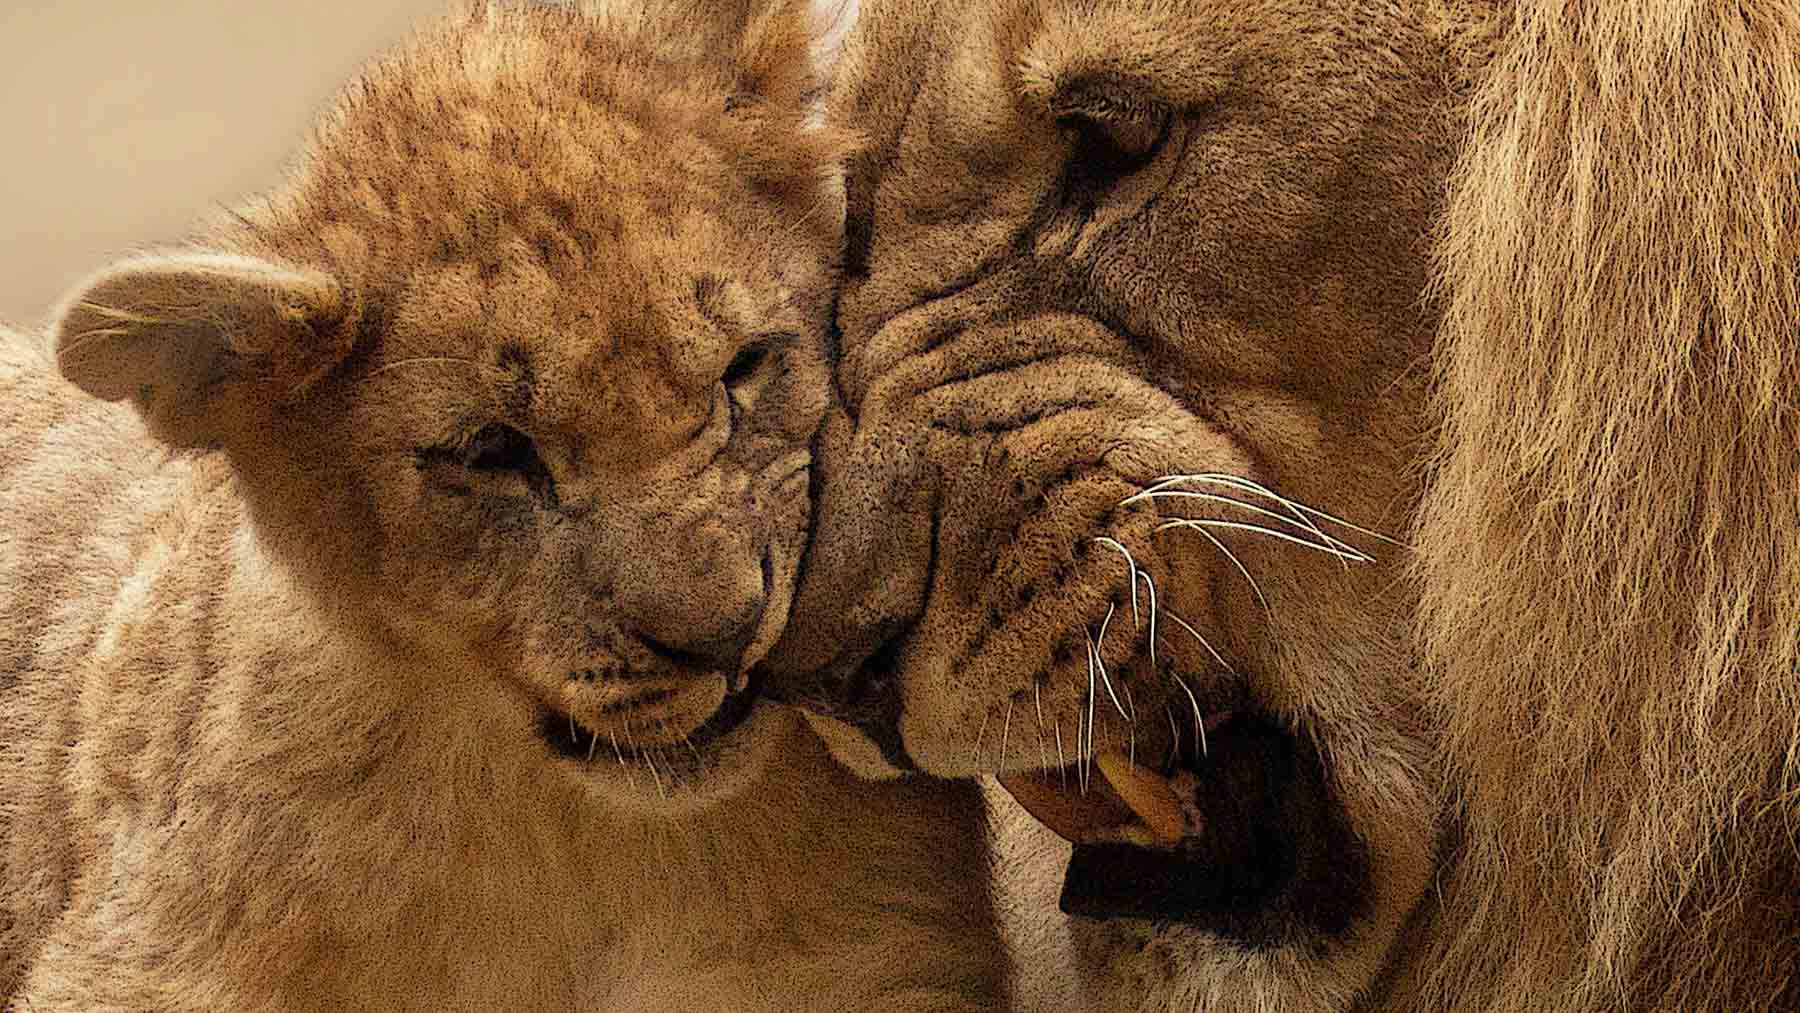 lion cub rubbing against male lion's face to represent the power of belief when we stop drinking